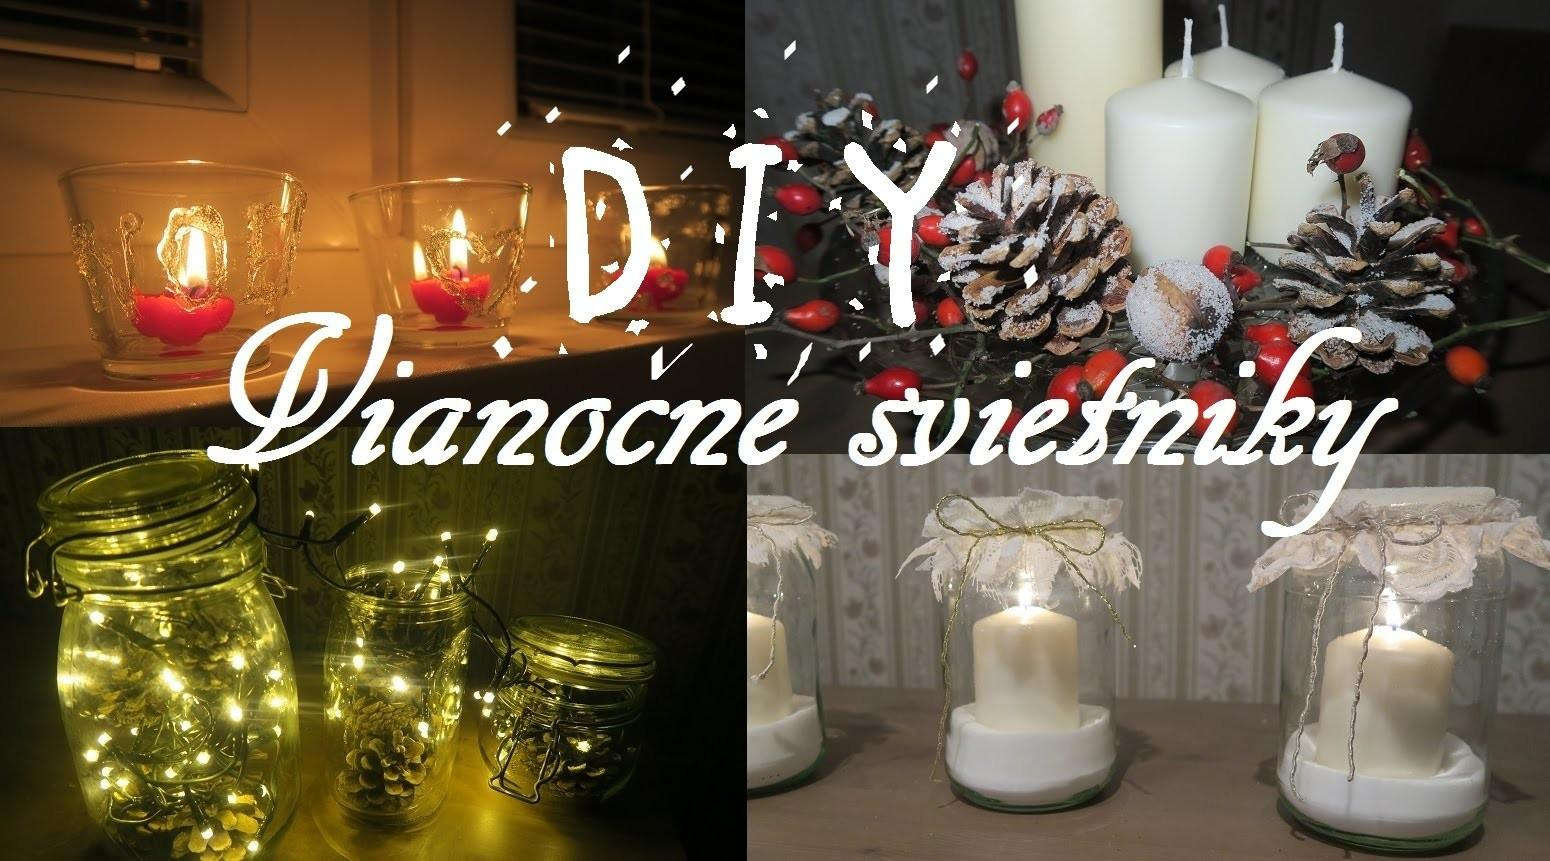 Diy Viano Svietniky Christmas Candle Holders